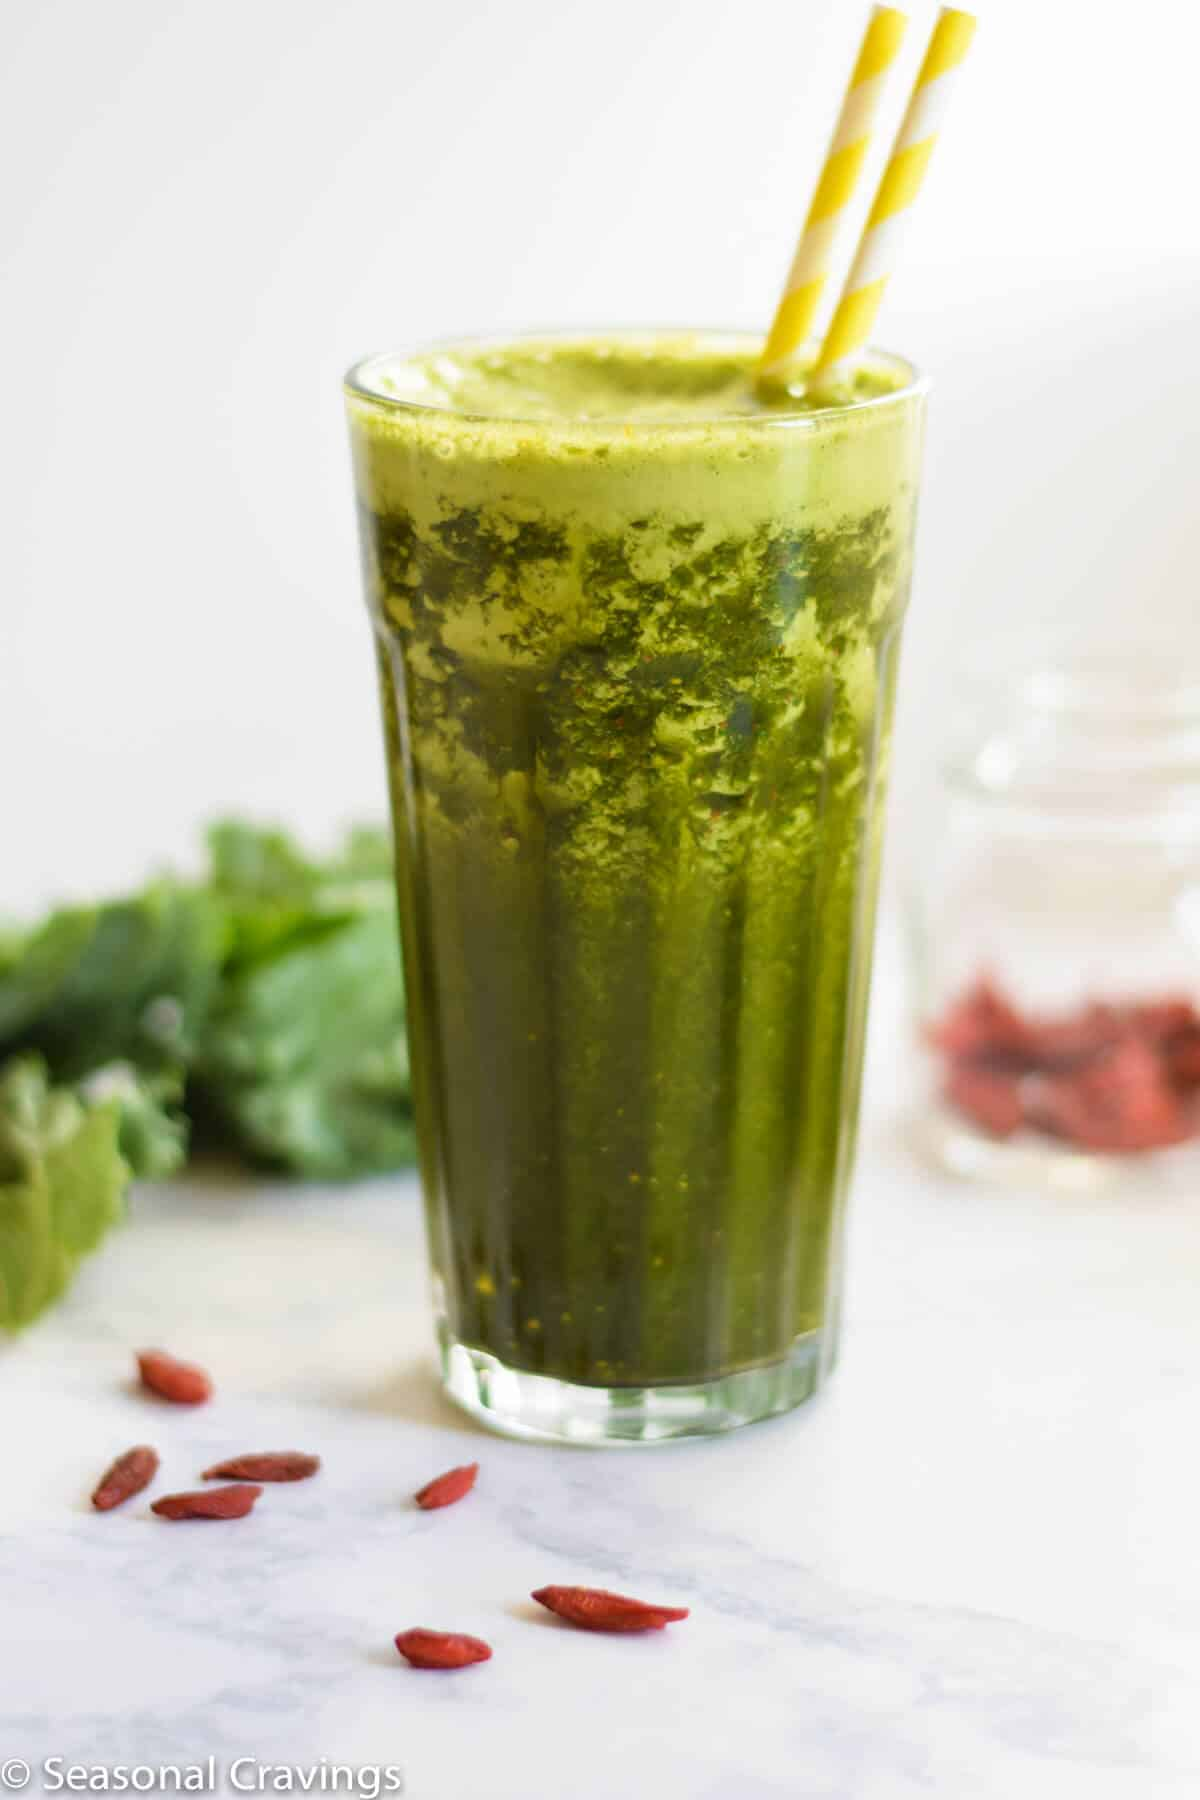 Green Goji Berry Smoothie in glass with two straws